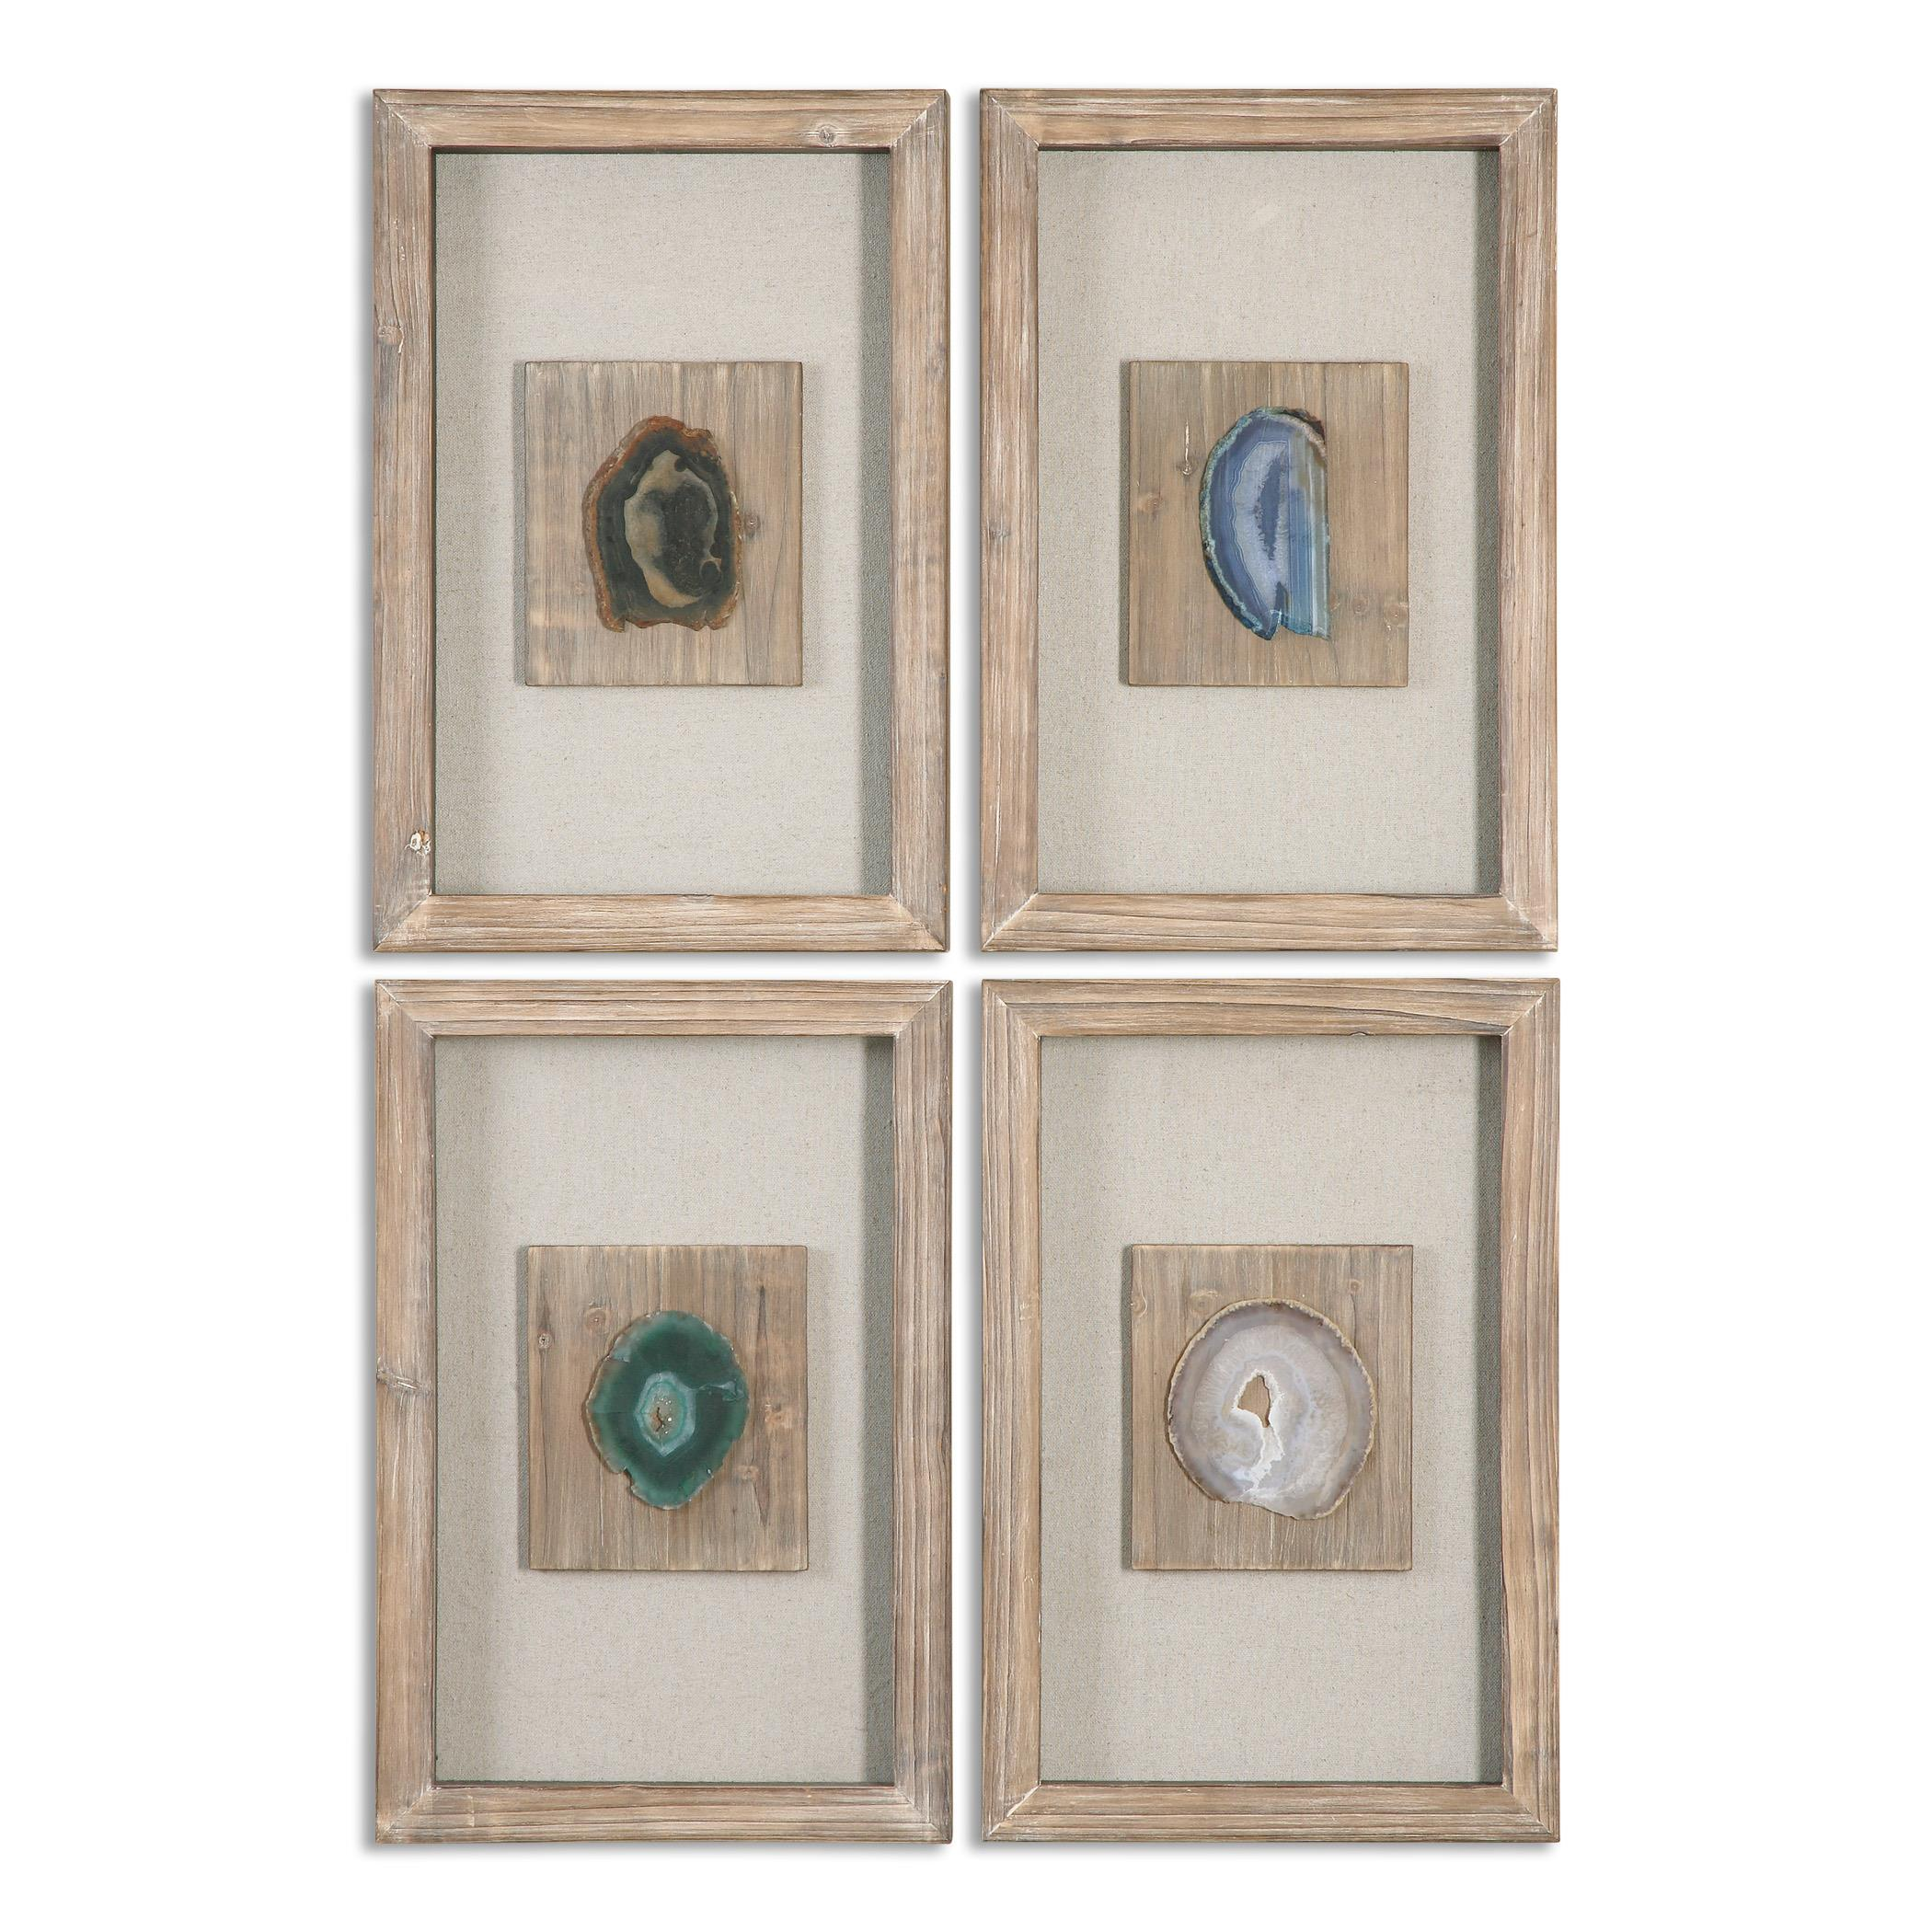 Uttermost Alternative Wall Decor Agate Stone, S/4 - Item Number: 14499